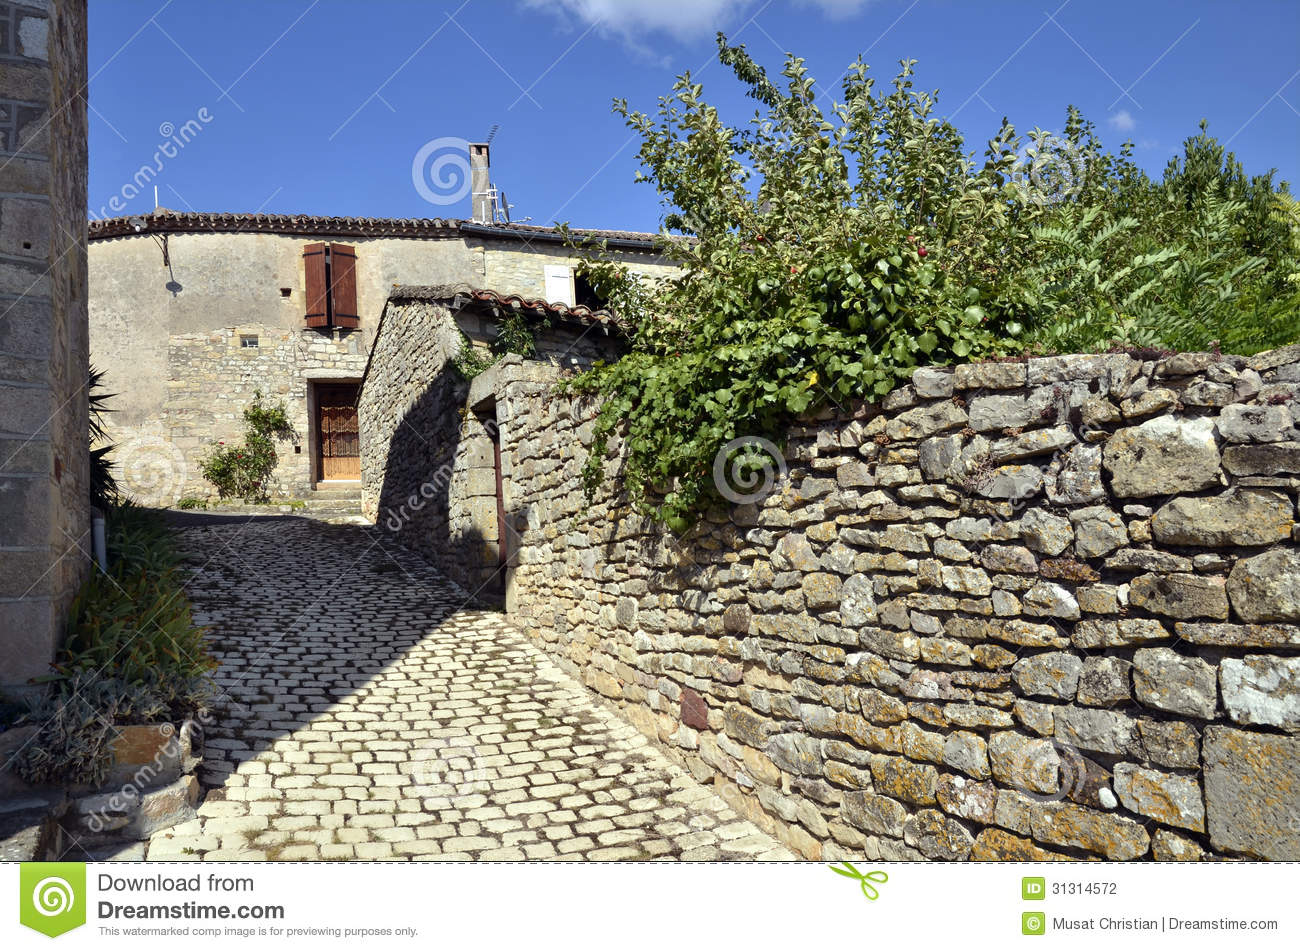 Old Village Of Puycelsi In France Stock Photos.